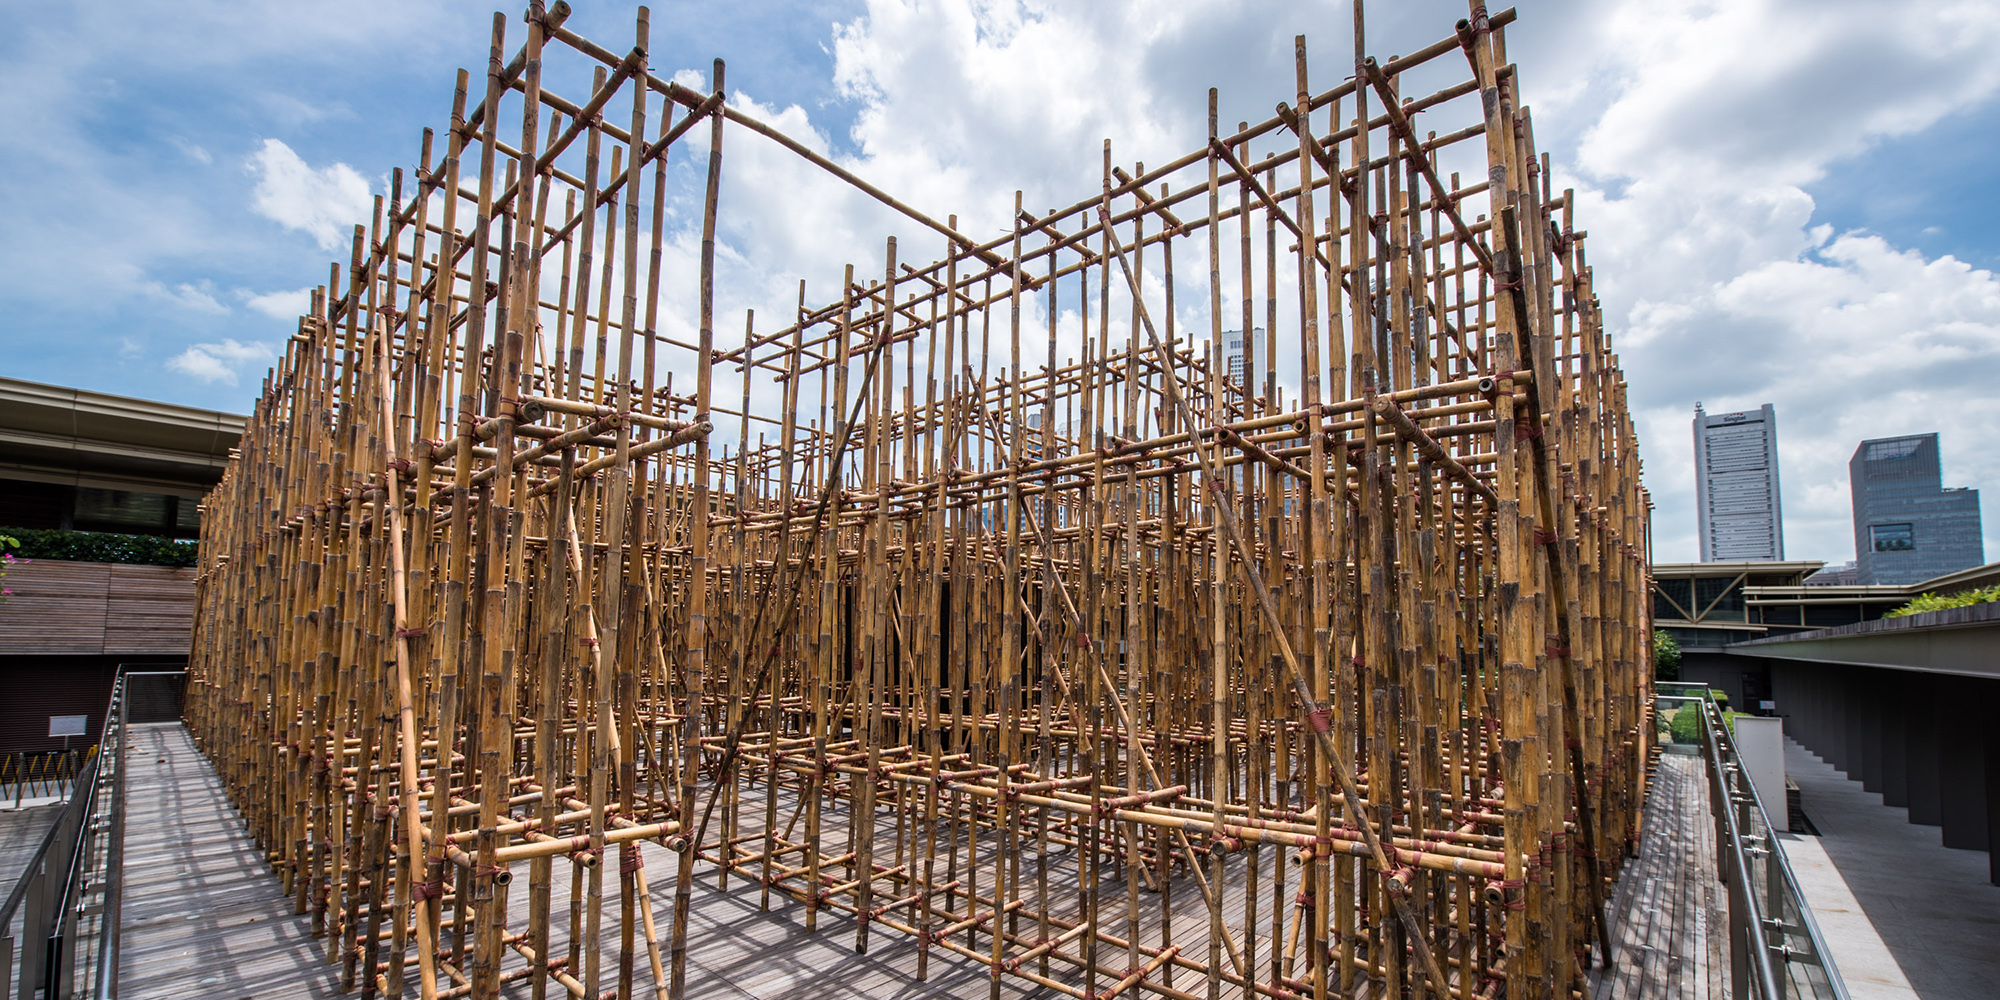 Va Faculty Member Rirkrit Tiravanija Creates Bamboo Maze